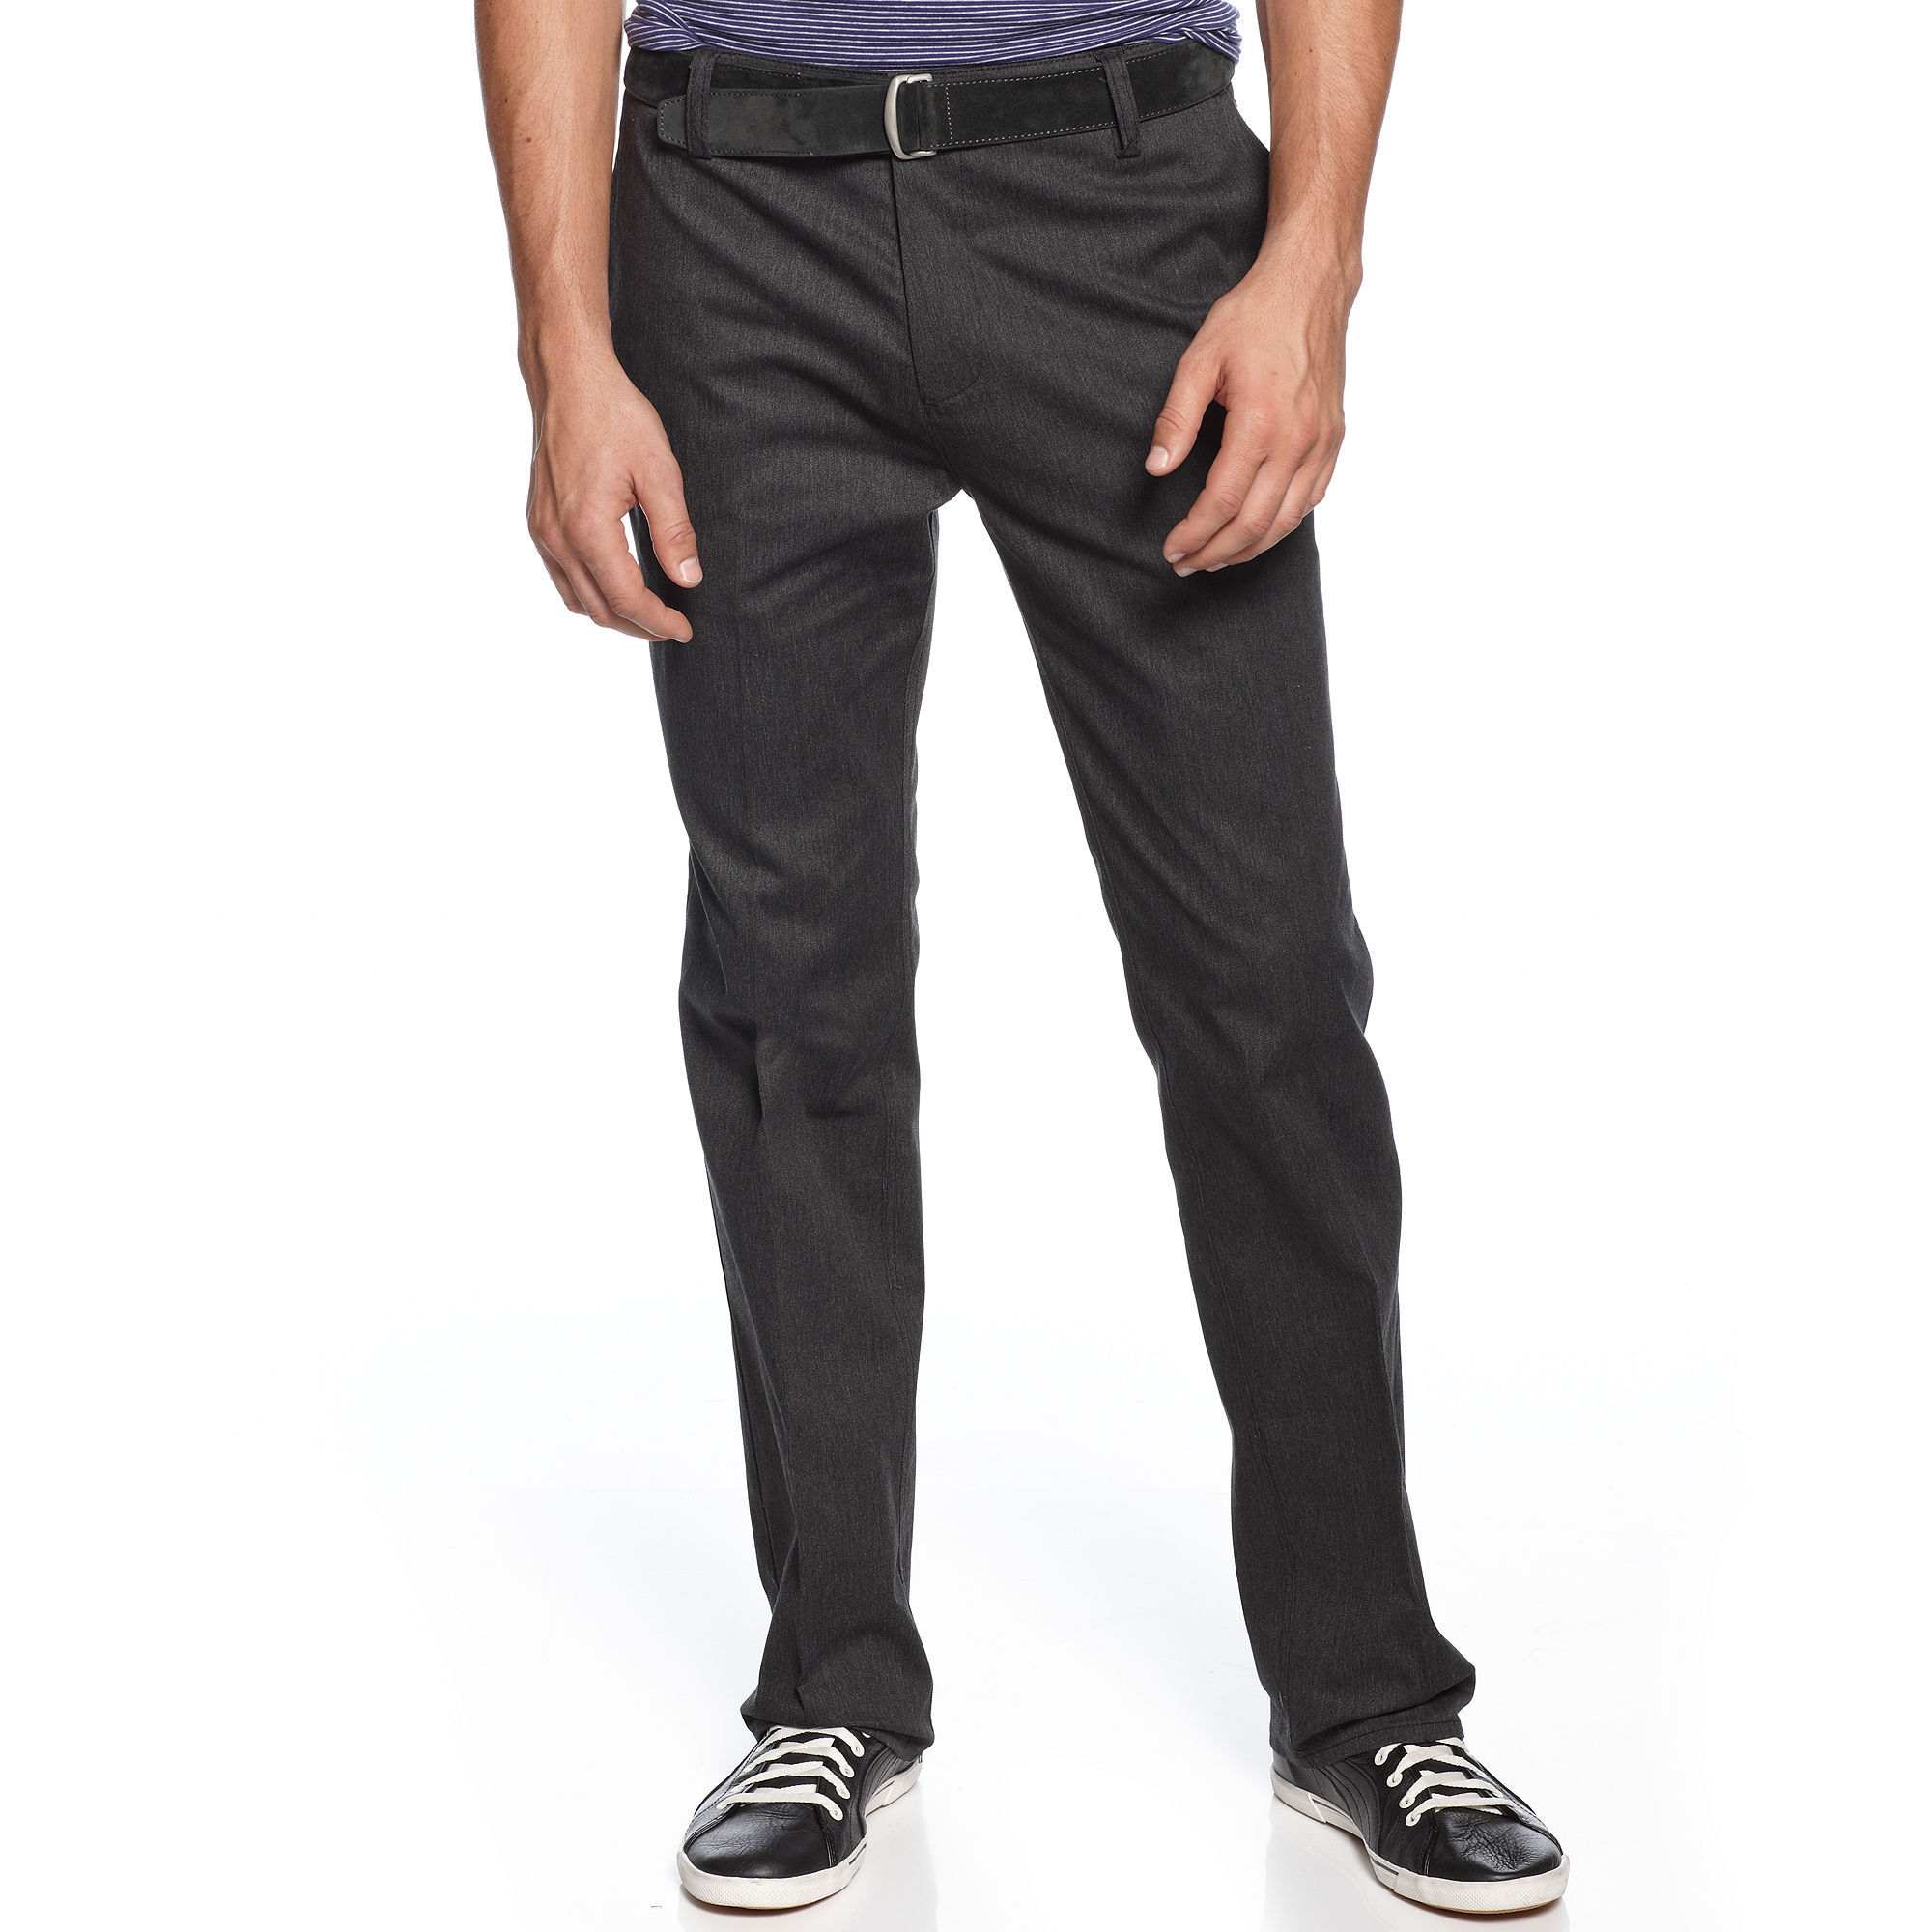 Dc Shoes Worker Pants In Black For Men Navy Lyst